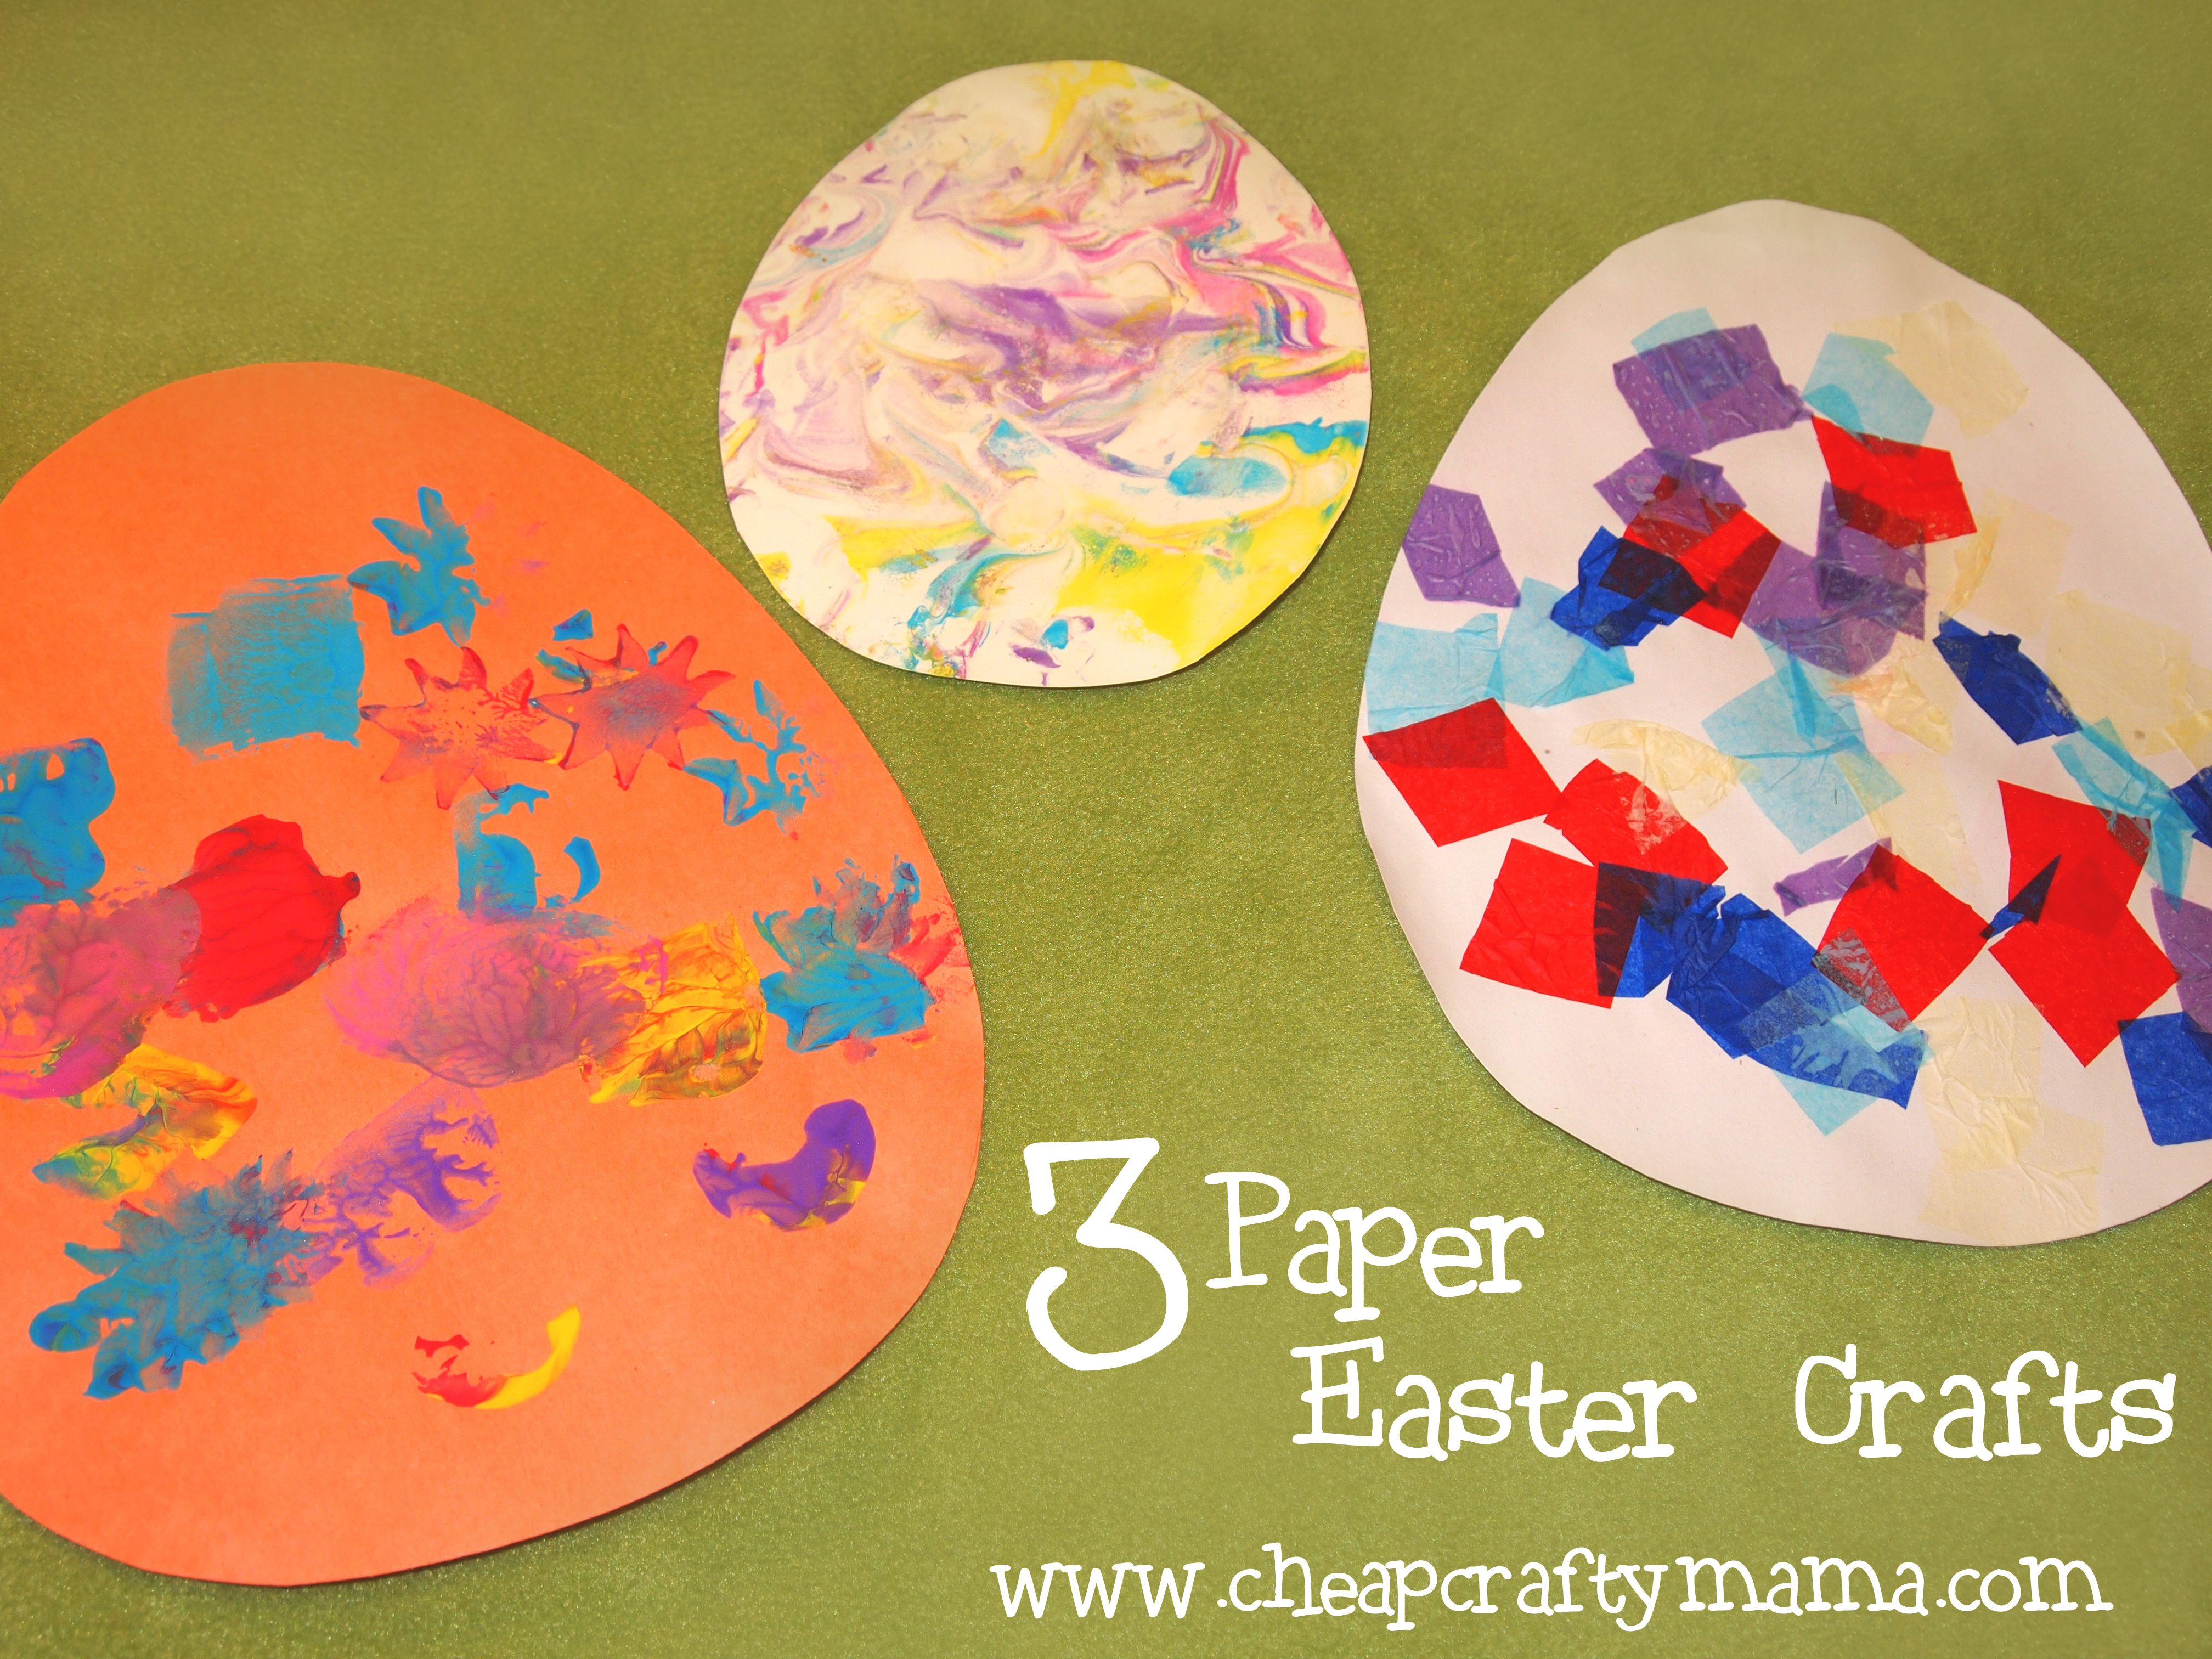 Easter craft ideas for toddlers - 1000 Images About Toddler Arts And Crafts On Pinterest Bubble Painting Cloud Dough Recipes And Crafts For Kids